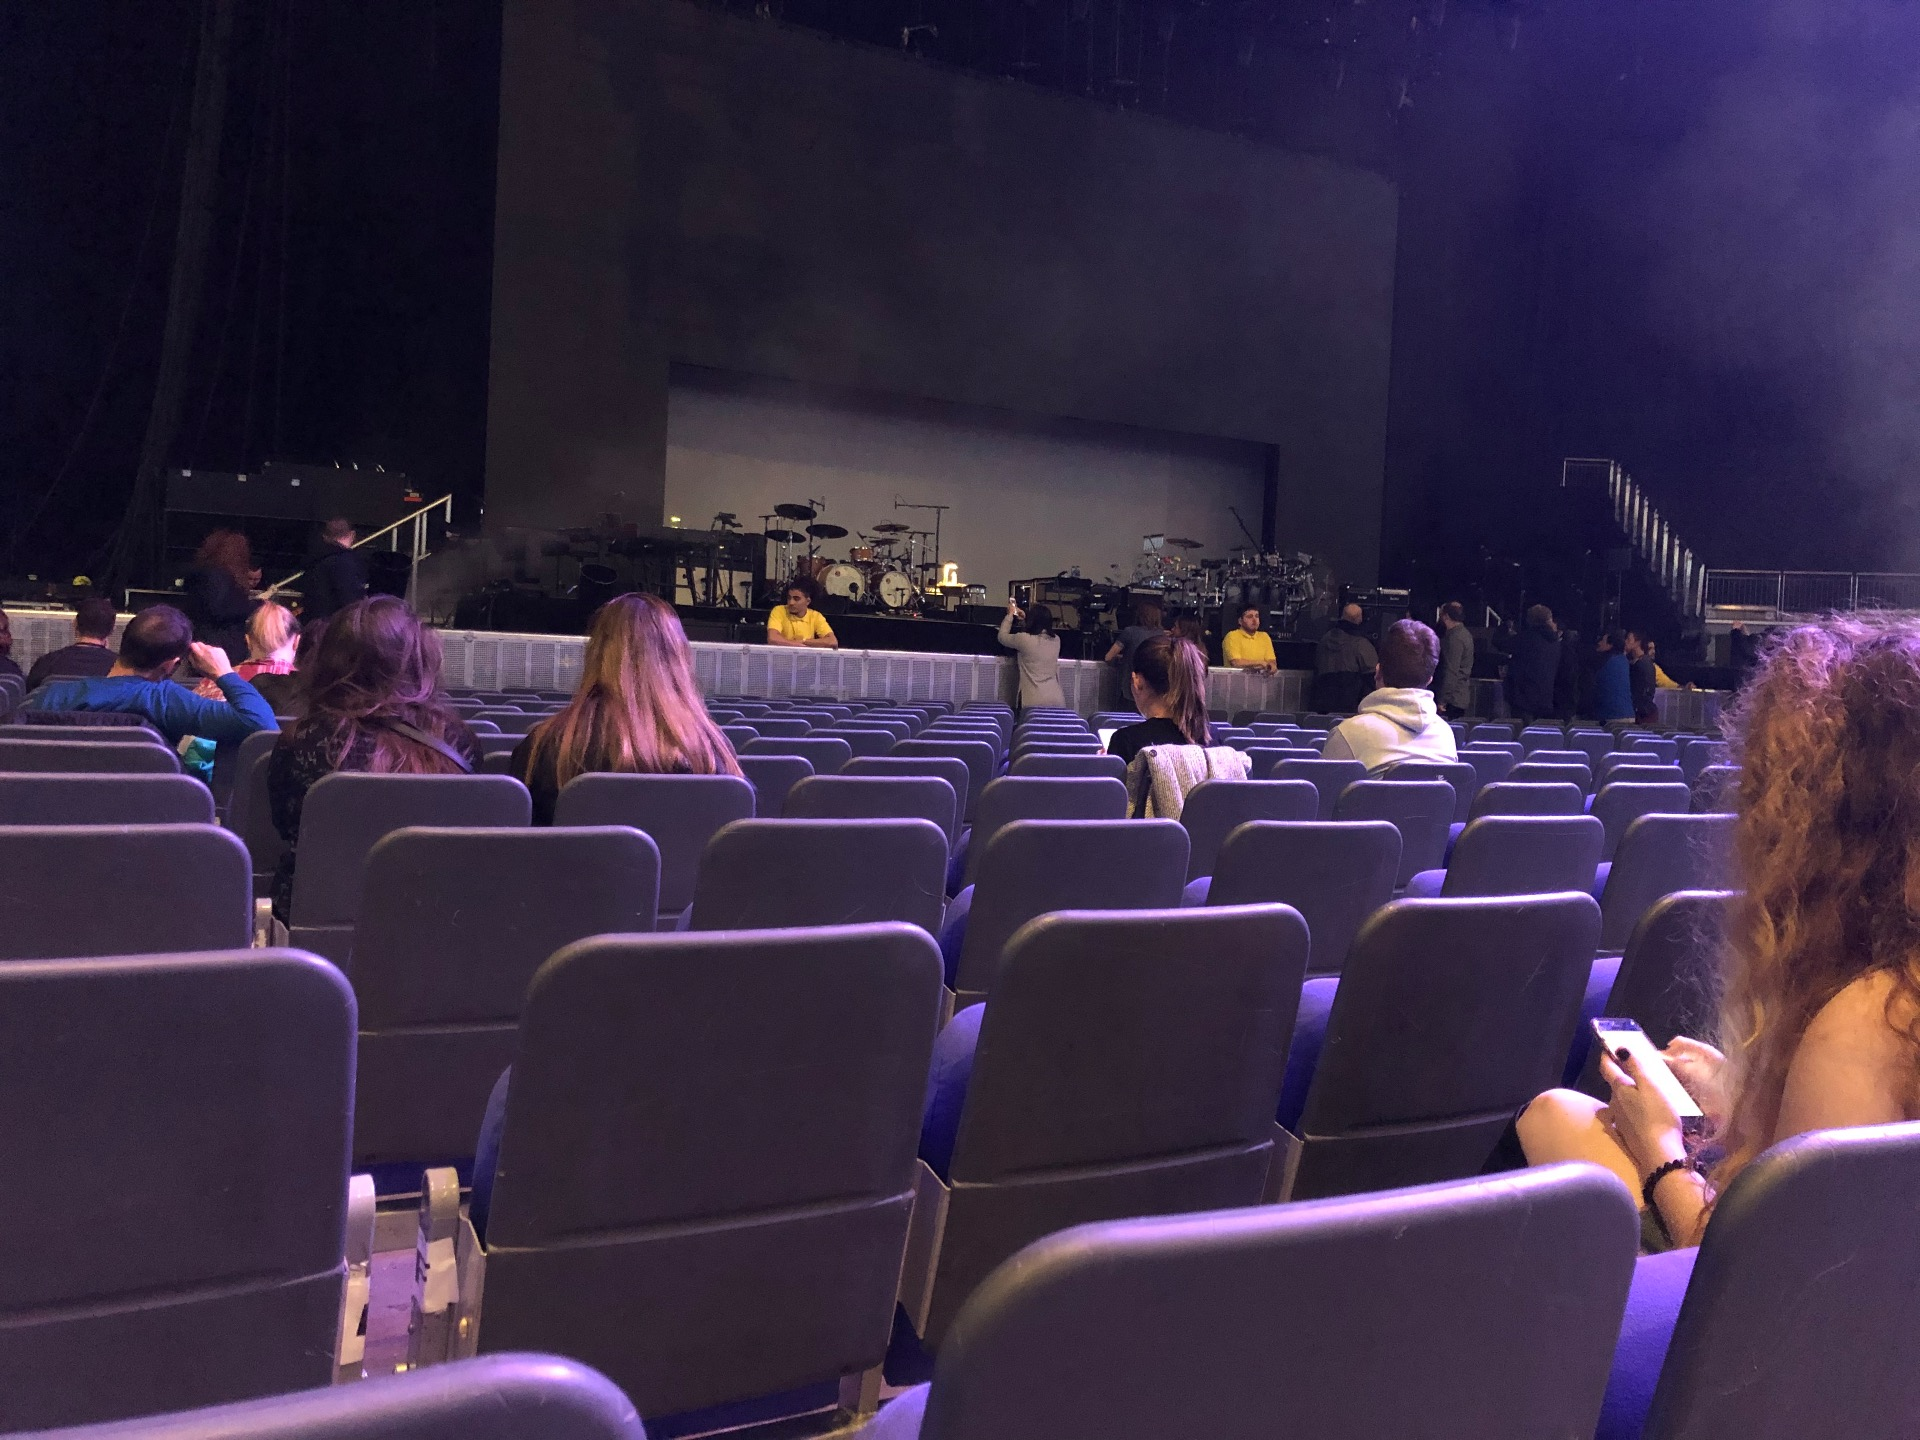 The O2 Arena Section Floor A1 Row P Seat 2